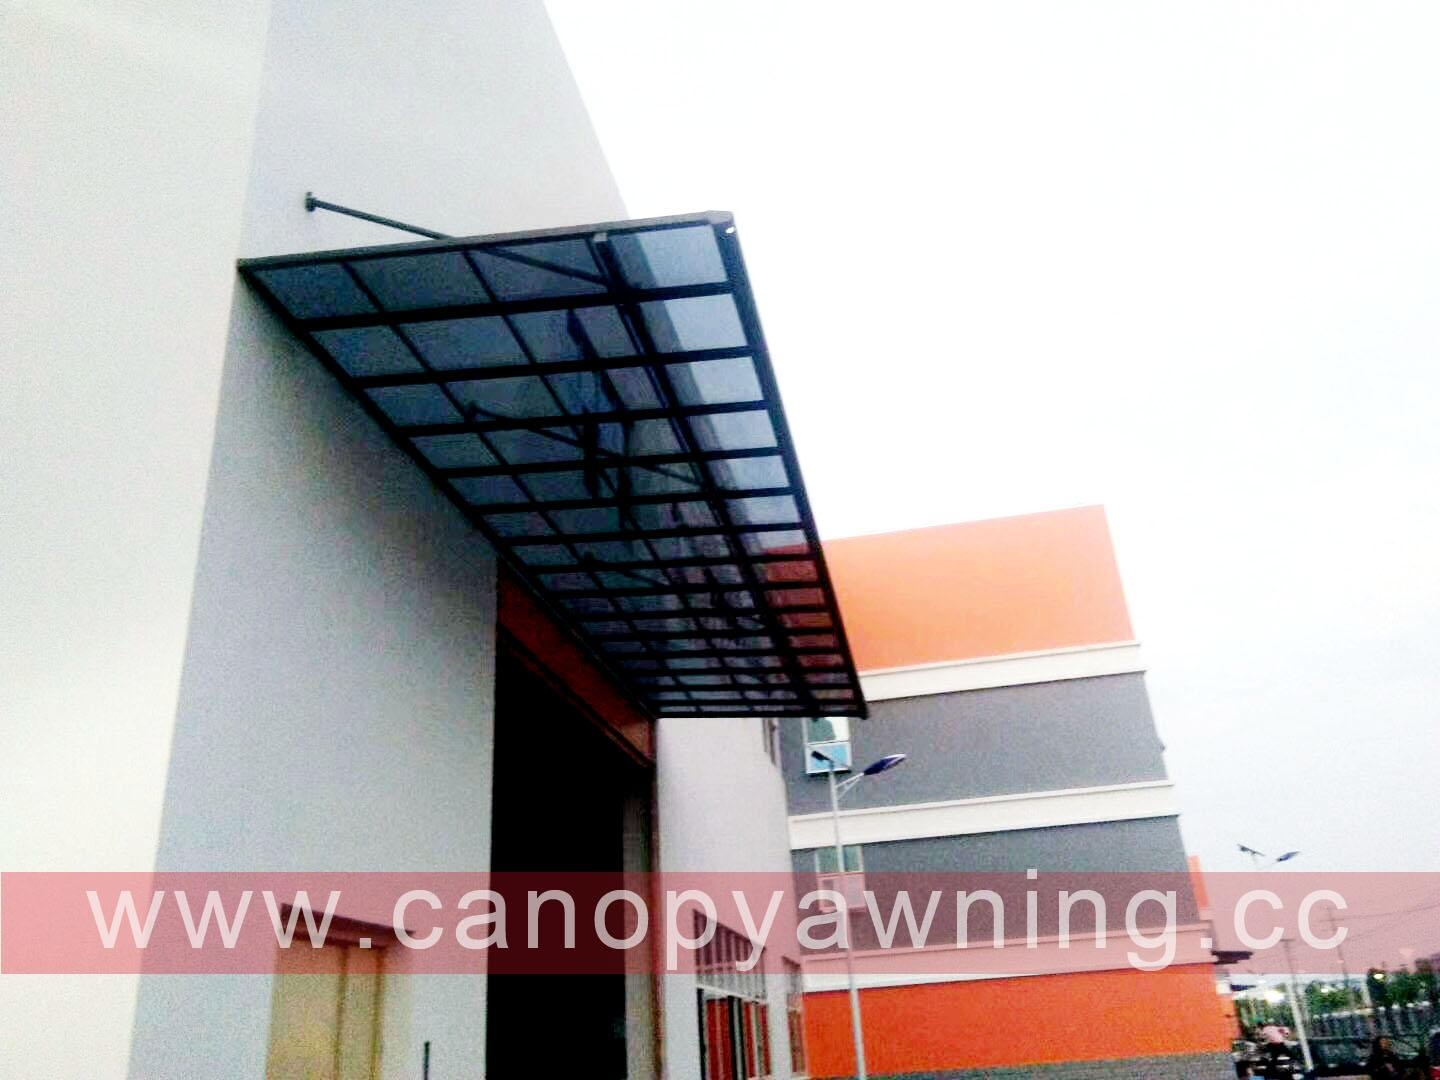 window door polycarbonate aluminum canopy awning shelter for sale